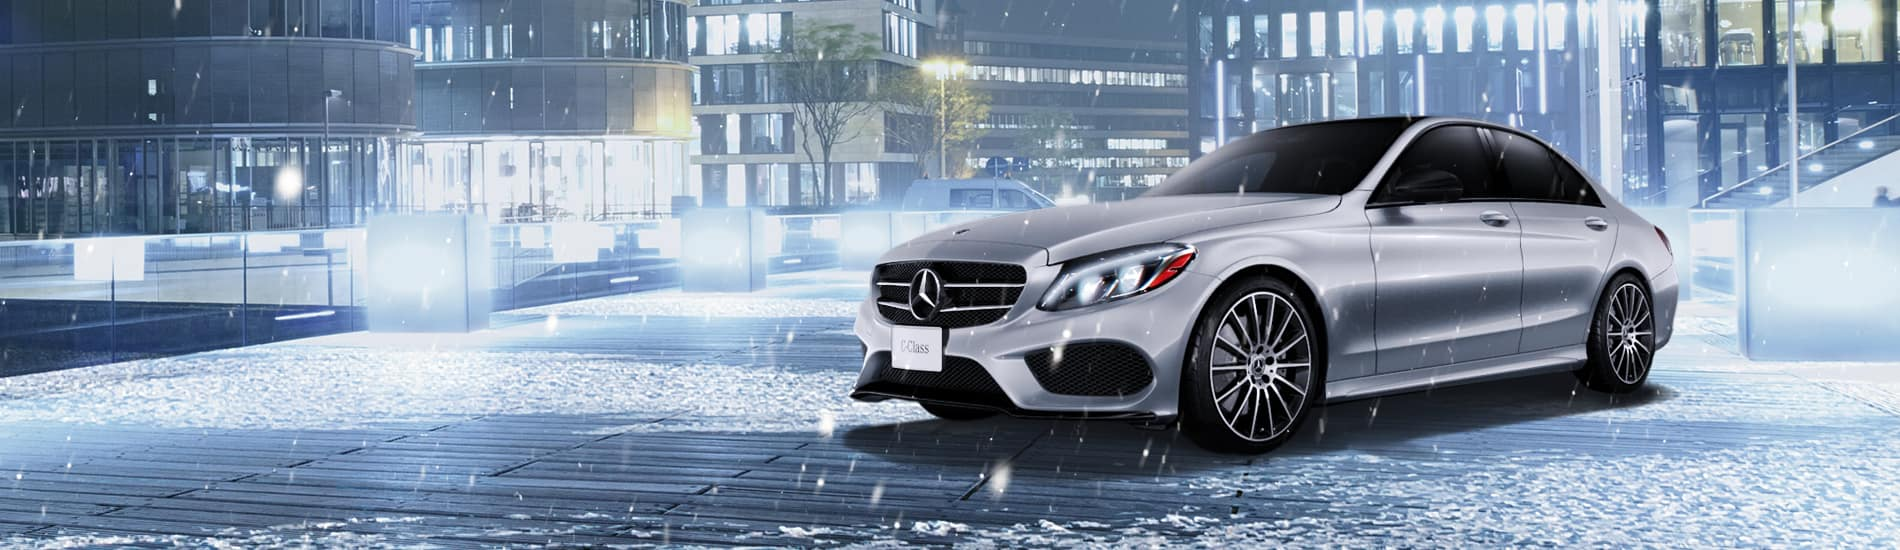 Current offers demos mercedes benz toronto retail group for Downtown mercedes benz service